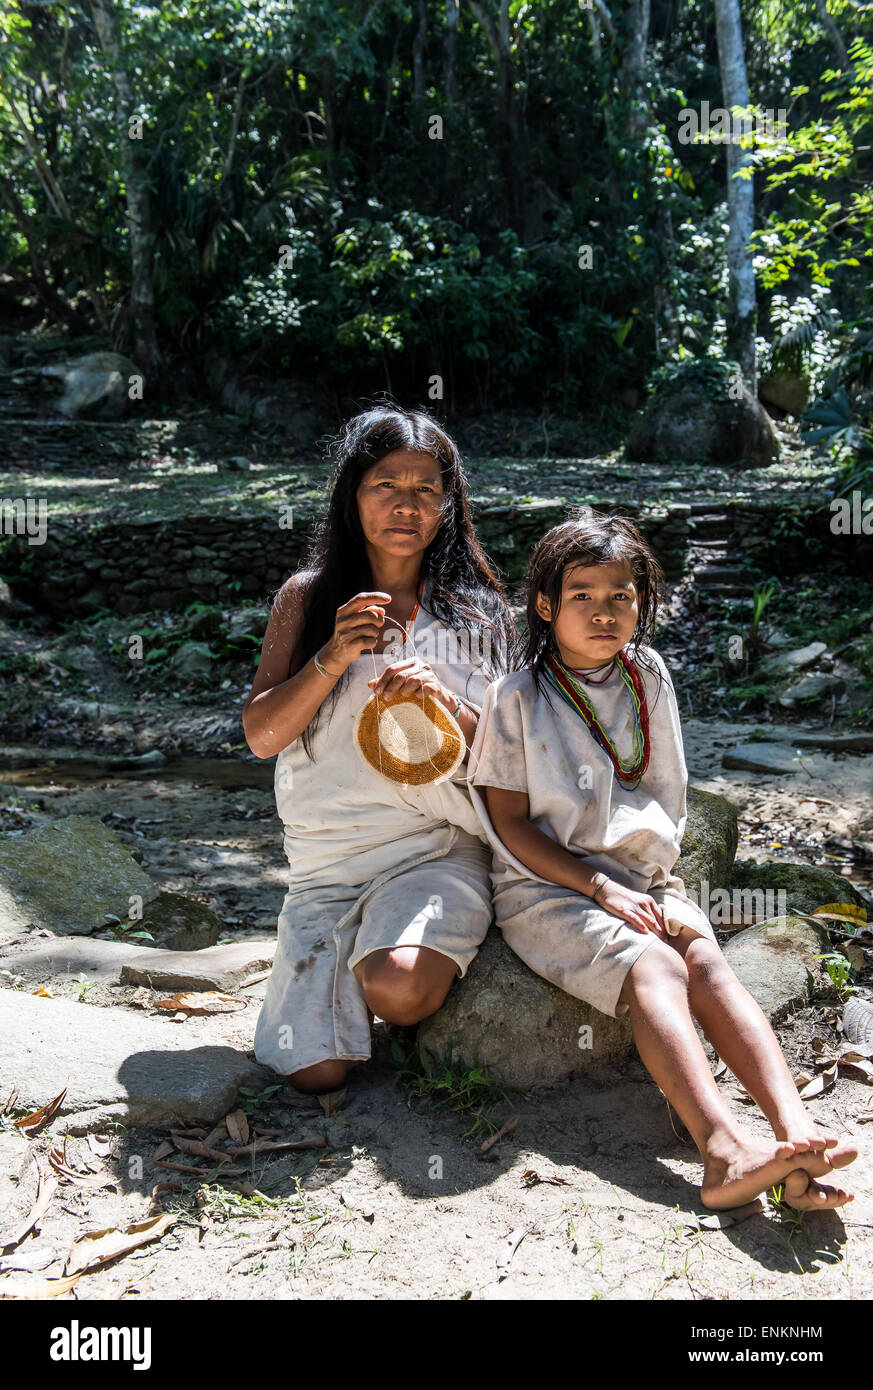 Kogi or Cogui or Kagaba mum knitting with young girl Tayrona National Park Santa Marta Colombia - Stock Image